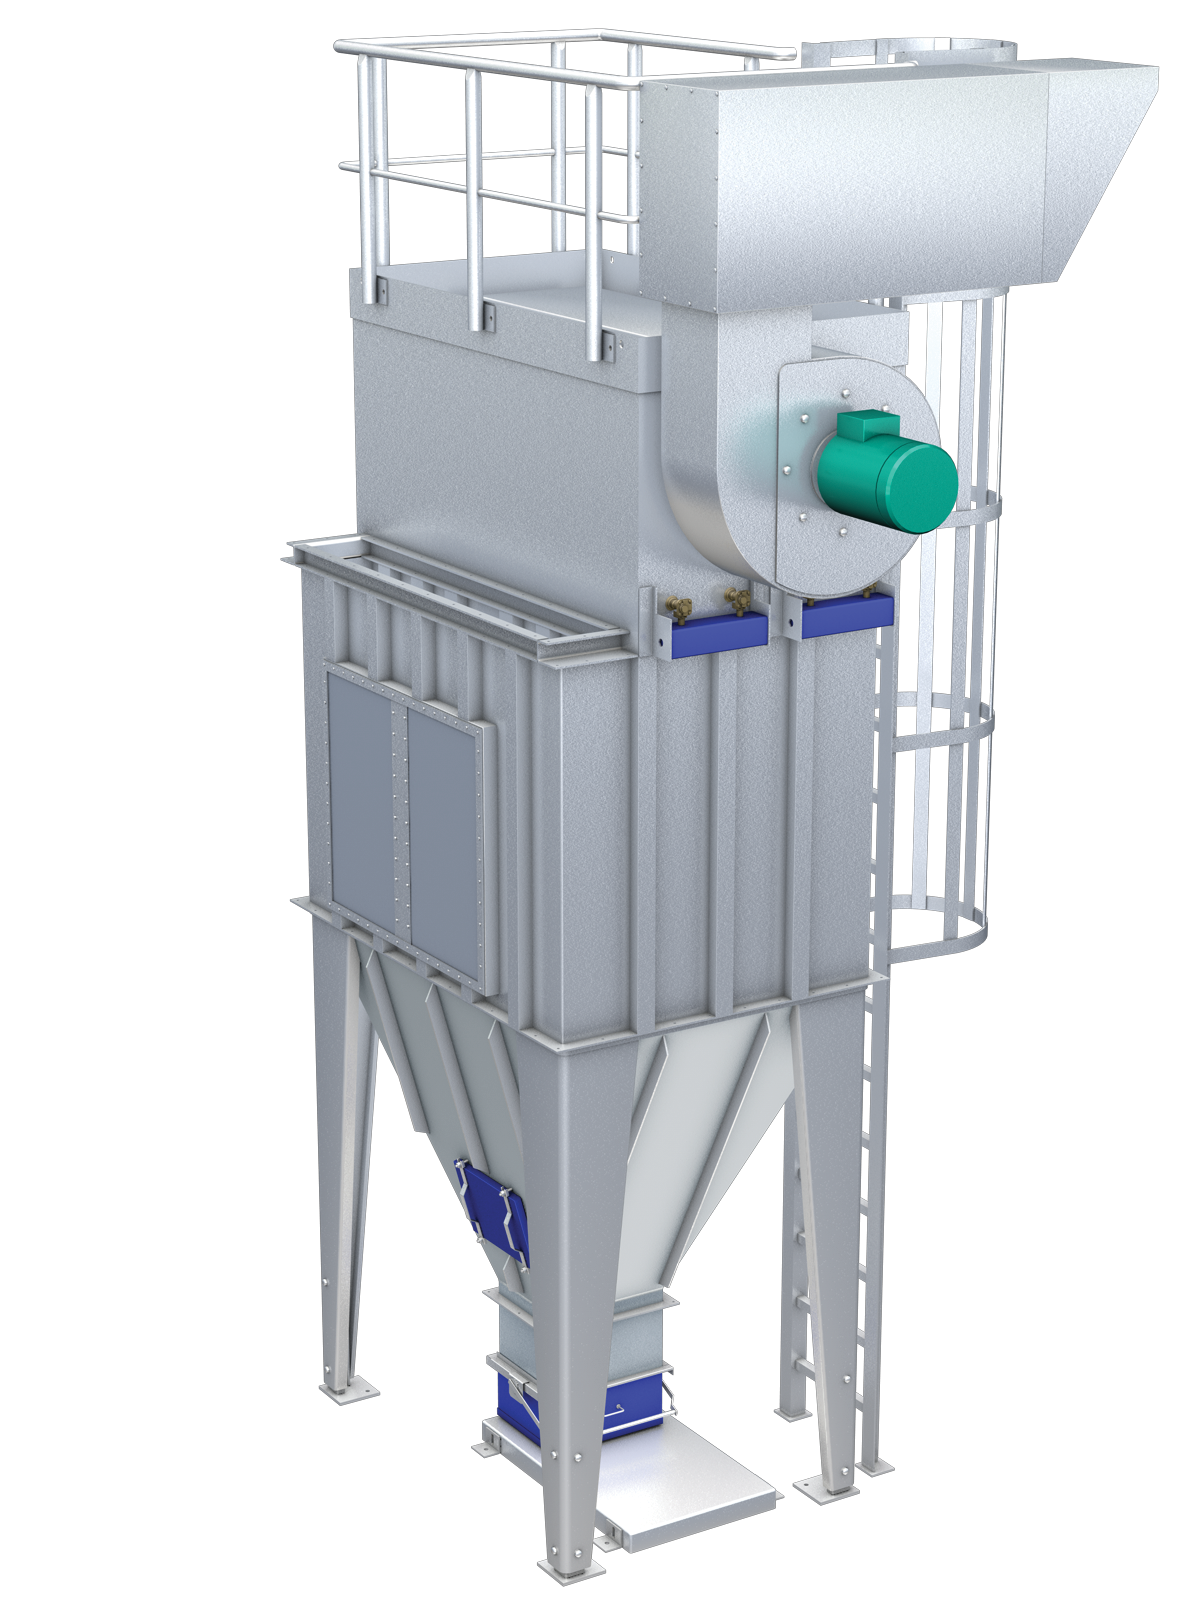 mj-cartridge-dust-collector-model_23339651382_o.png